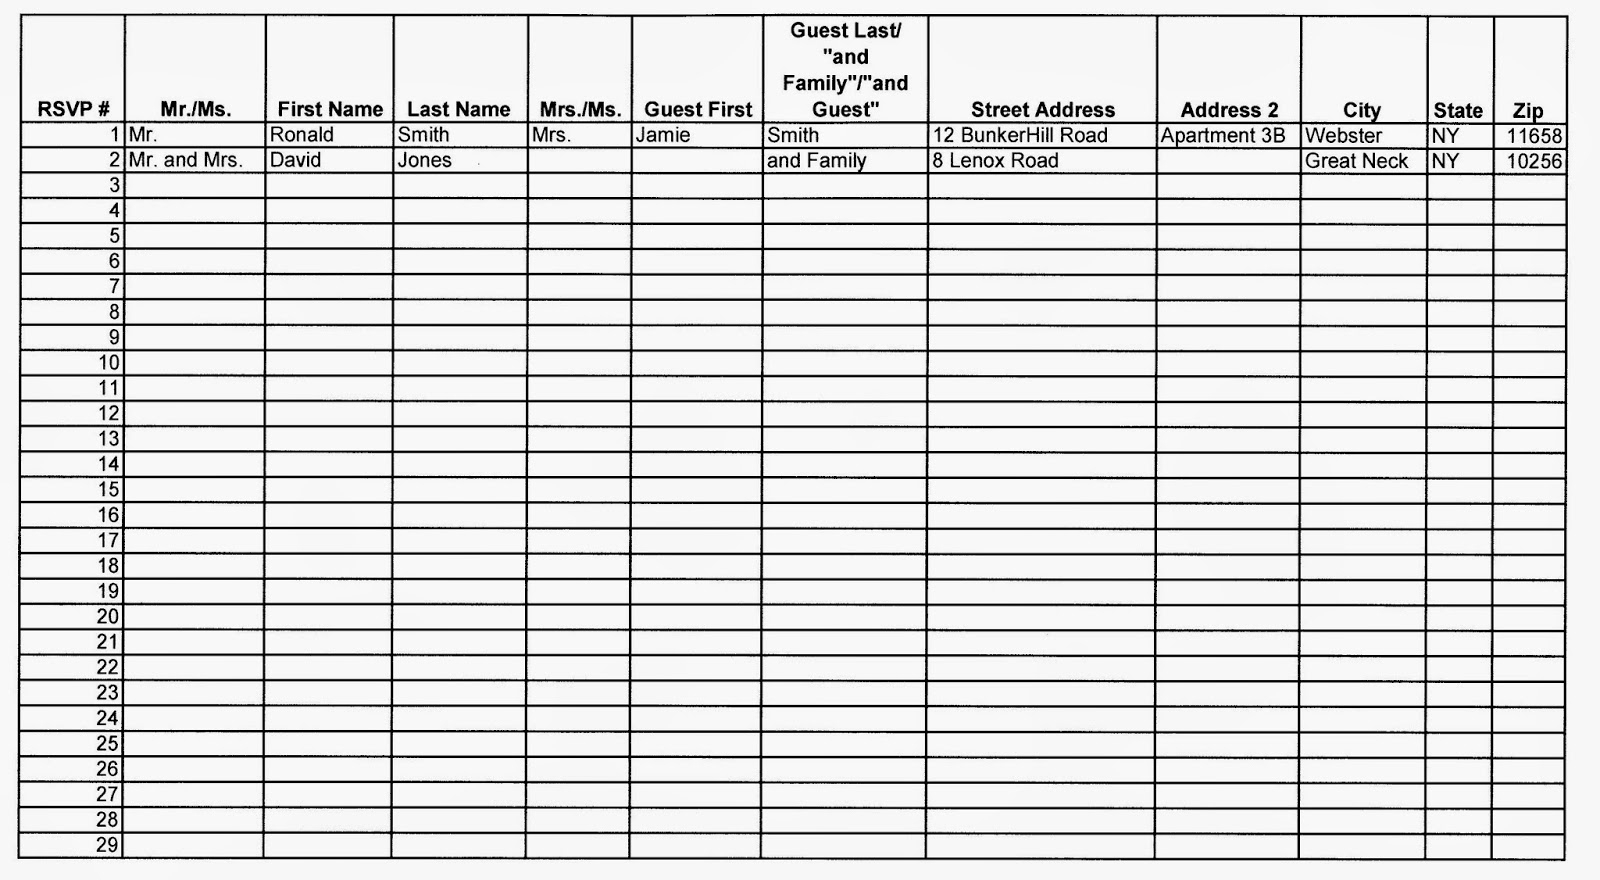 Shawn Rabideau Events And Design: Organizing Your Guest List in Event Guest List Template Excel